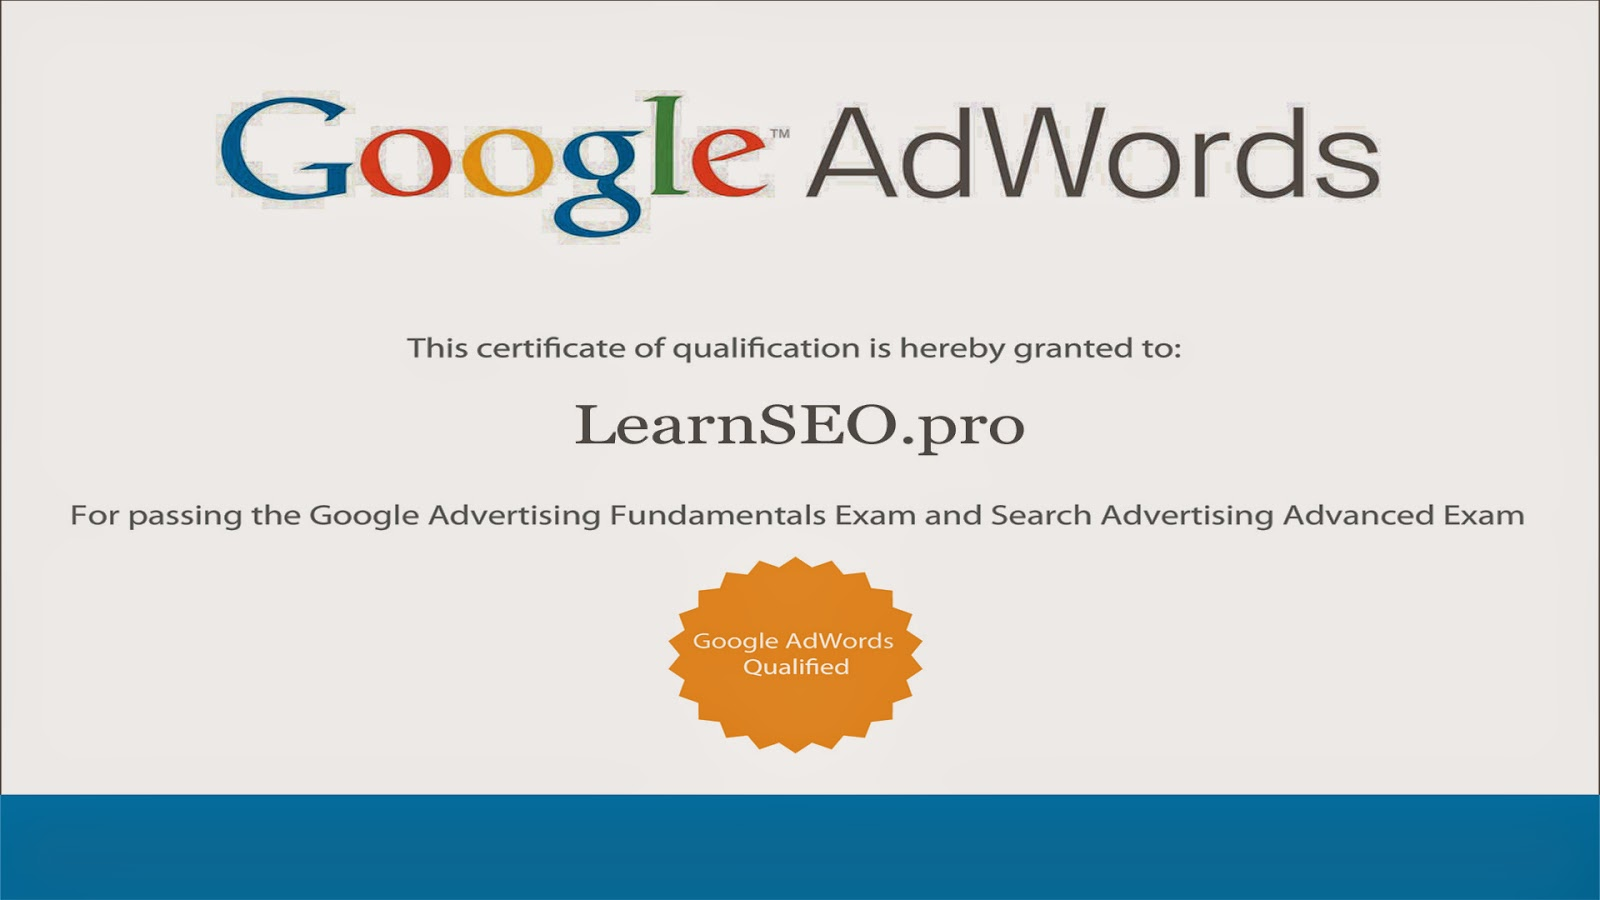 Google adwords certification exam tutorials learnseoo google adwords certification xflitez Image collections